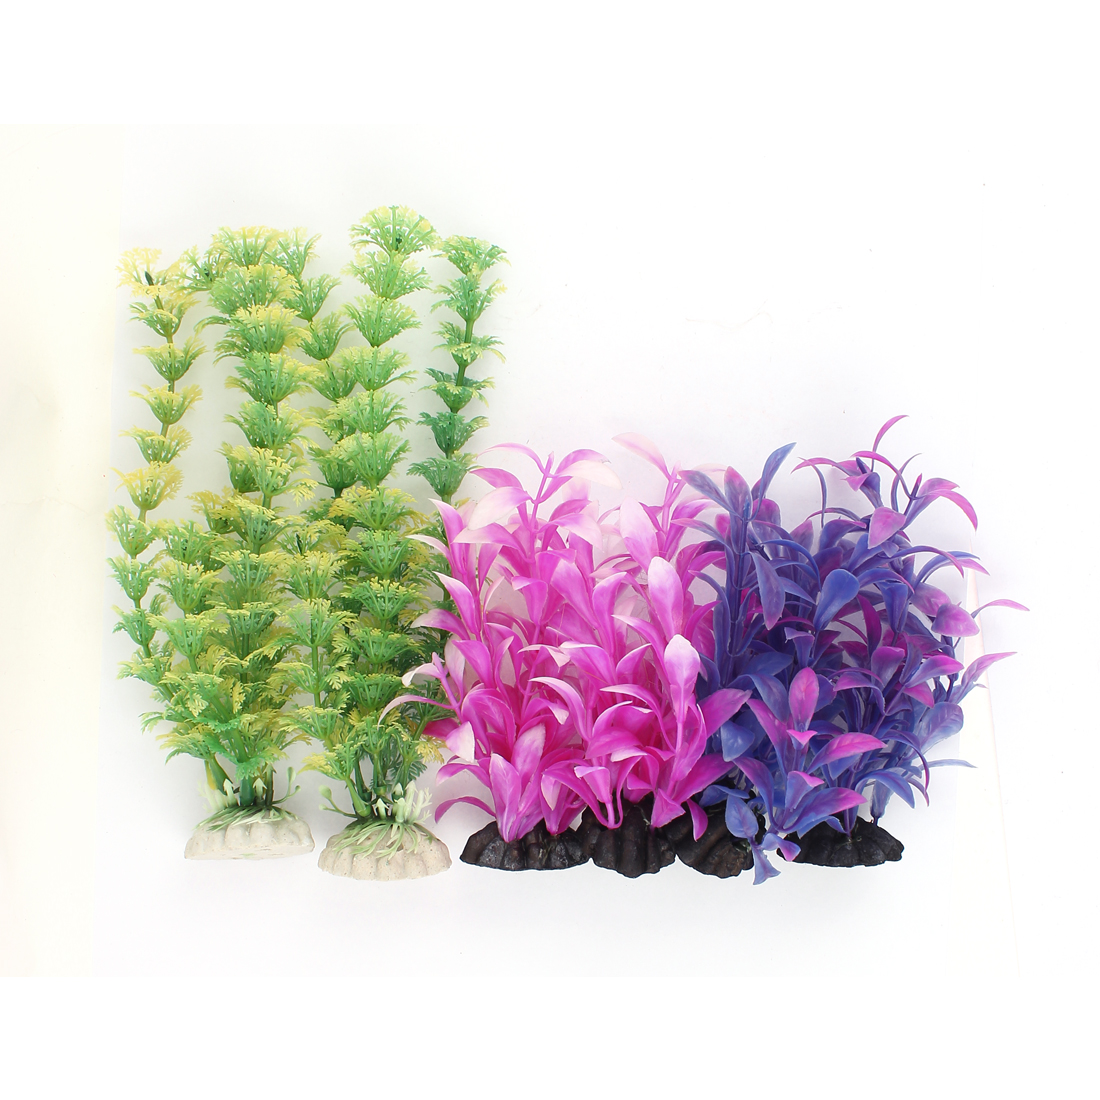 Plastic Underwater Aquascaping Plant Fish Tank Aquarium Decor 6pcs